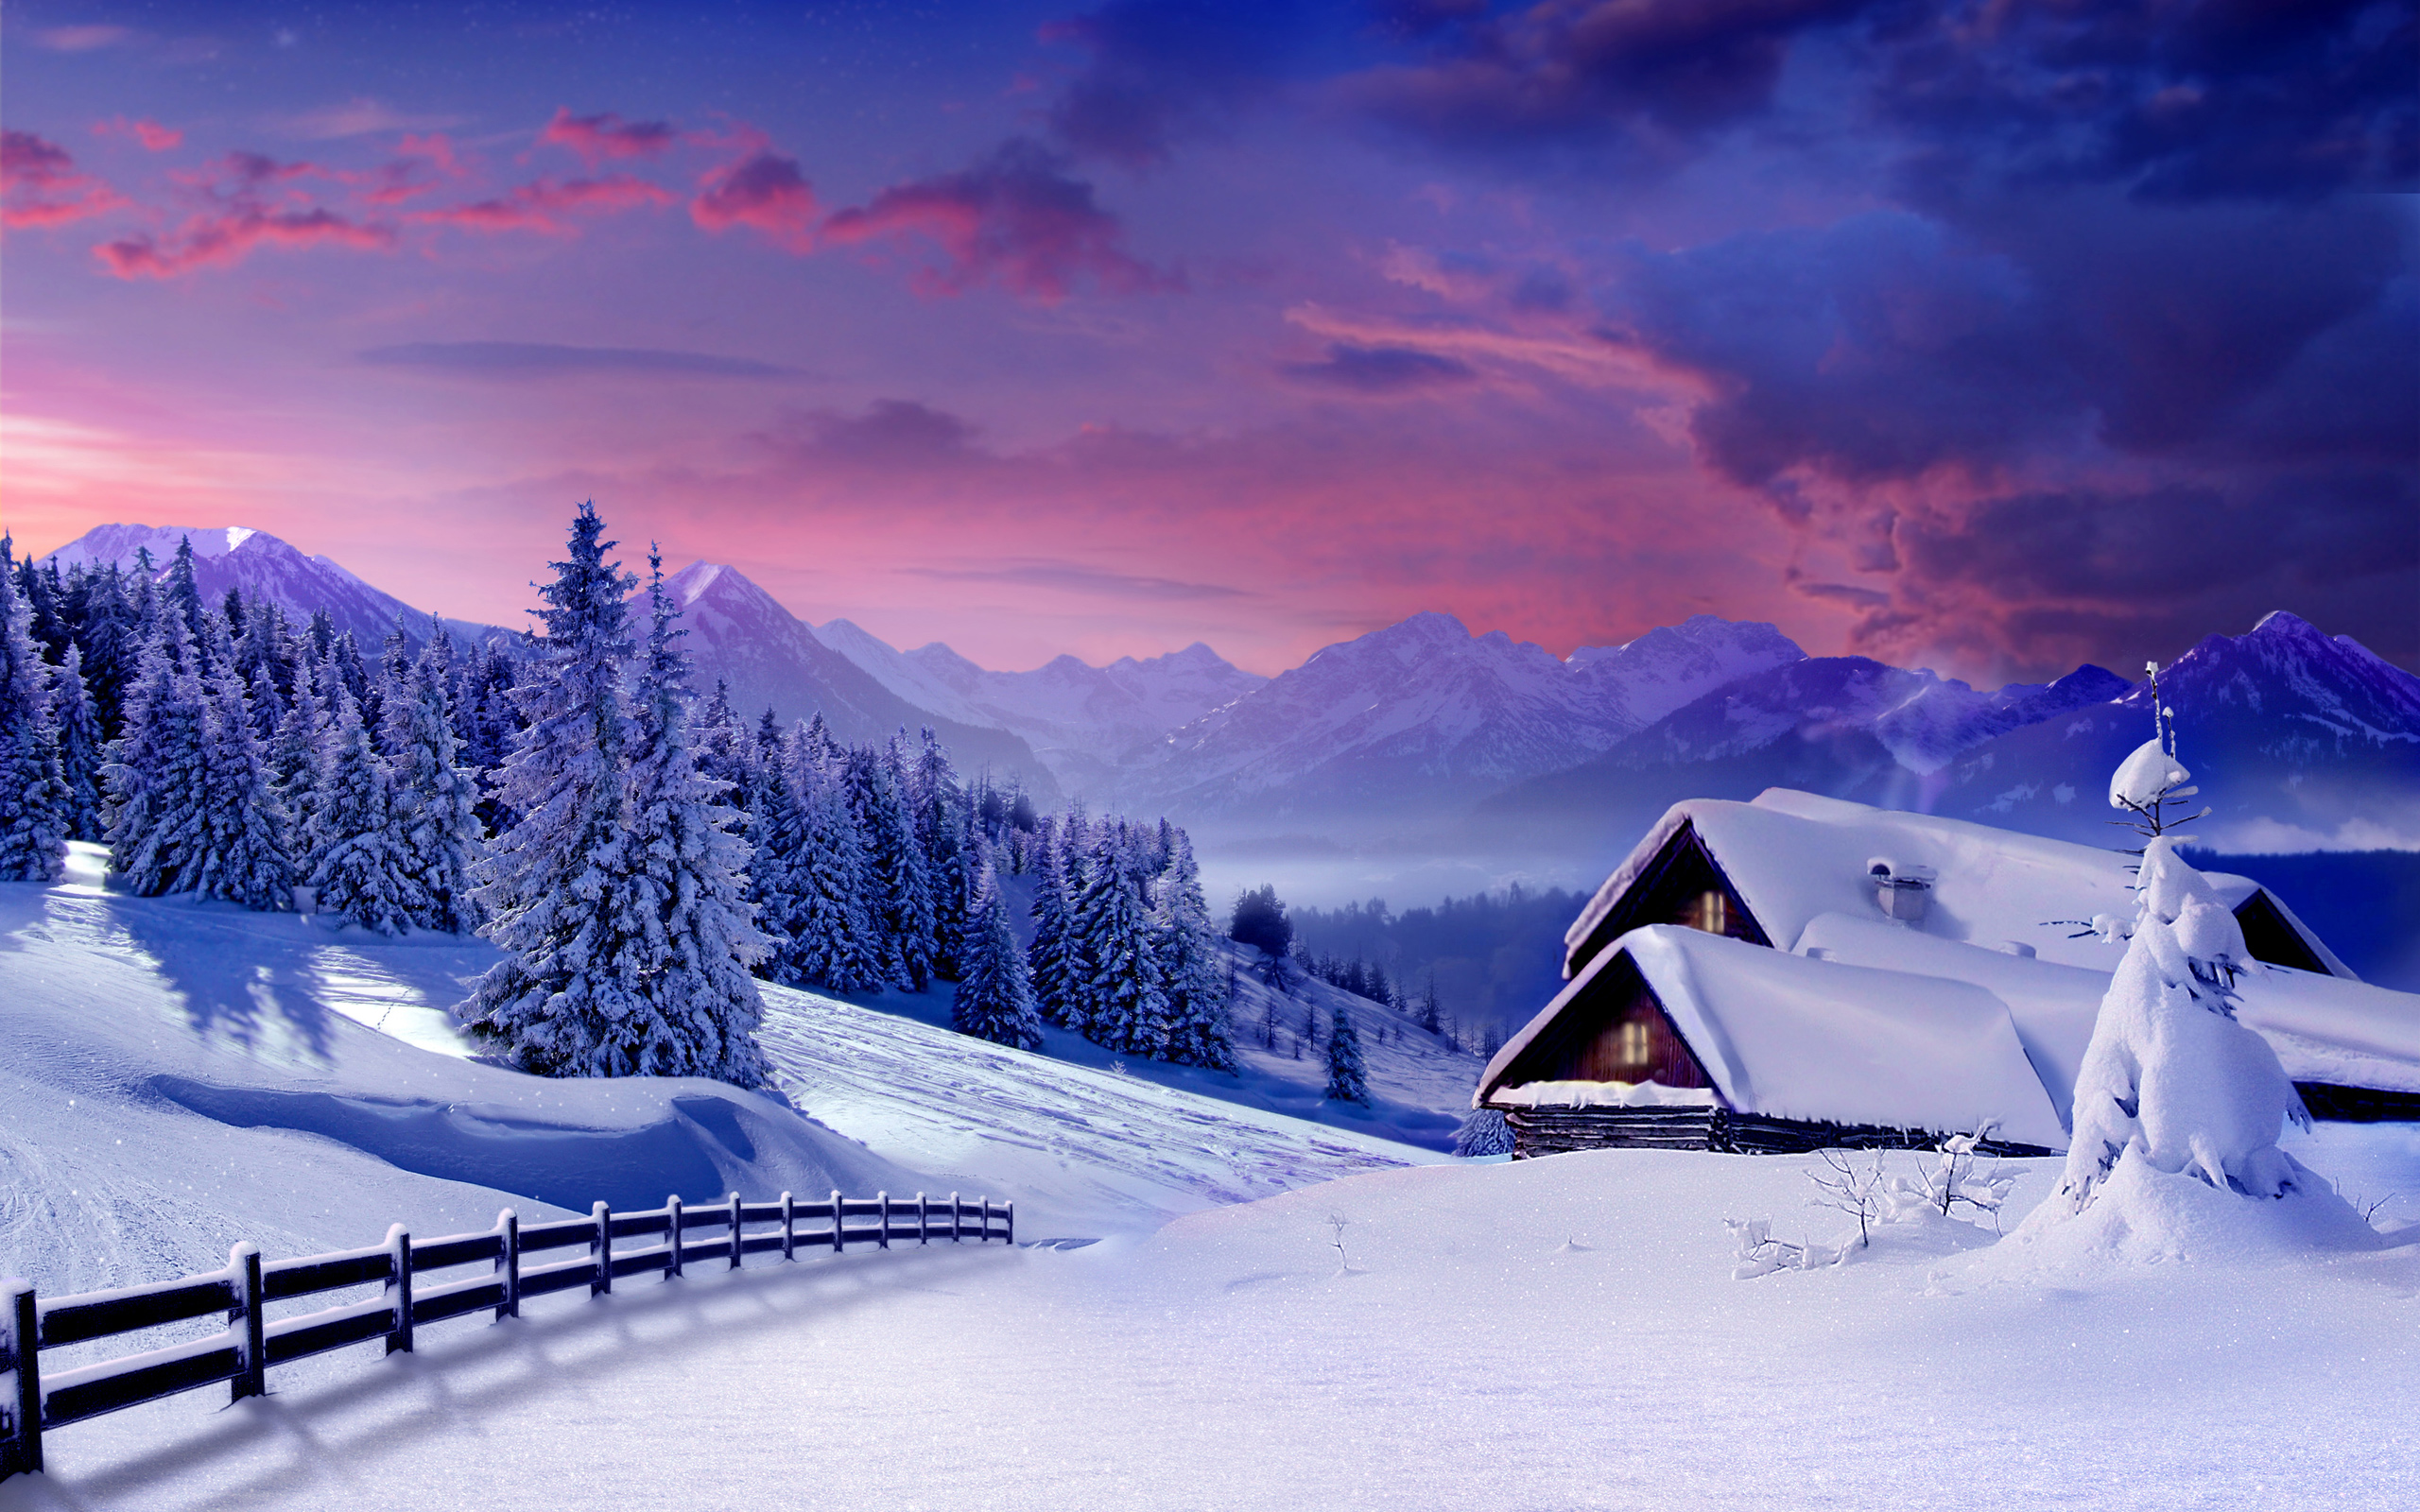 Free winter photos season free hd wallpapers hd wallpaper free winter photos season free hd wallpapers voltagebd Image collections